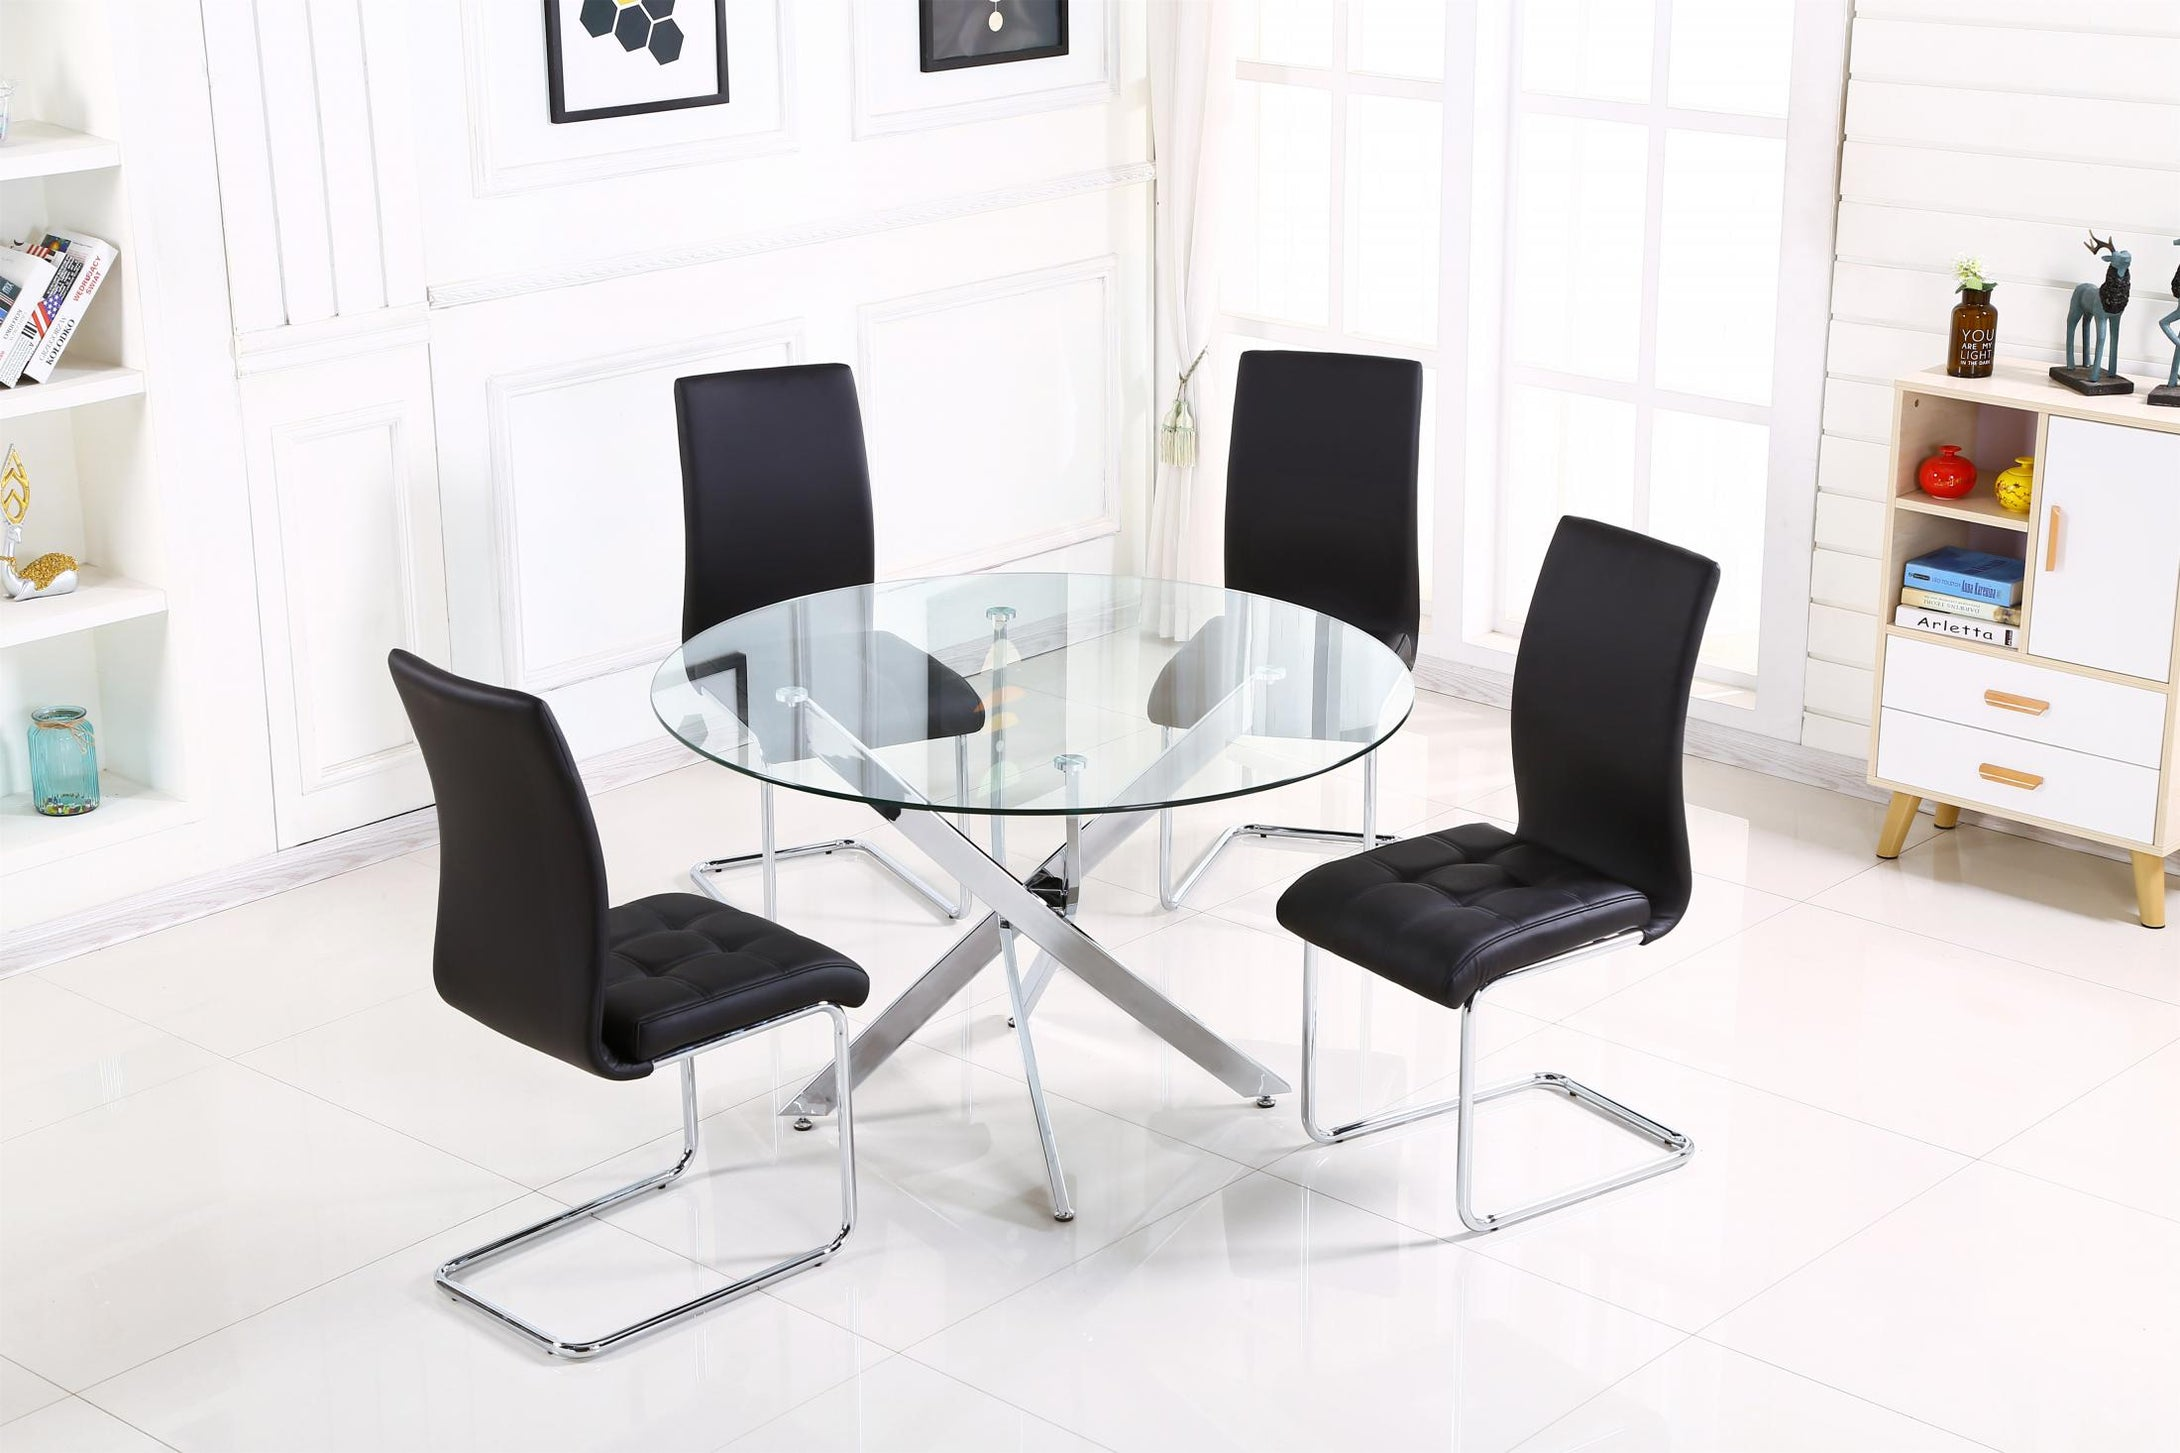 Samurai Large Dining Table Chrome & Clear with 4 Chairs